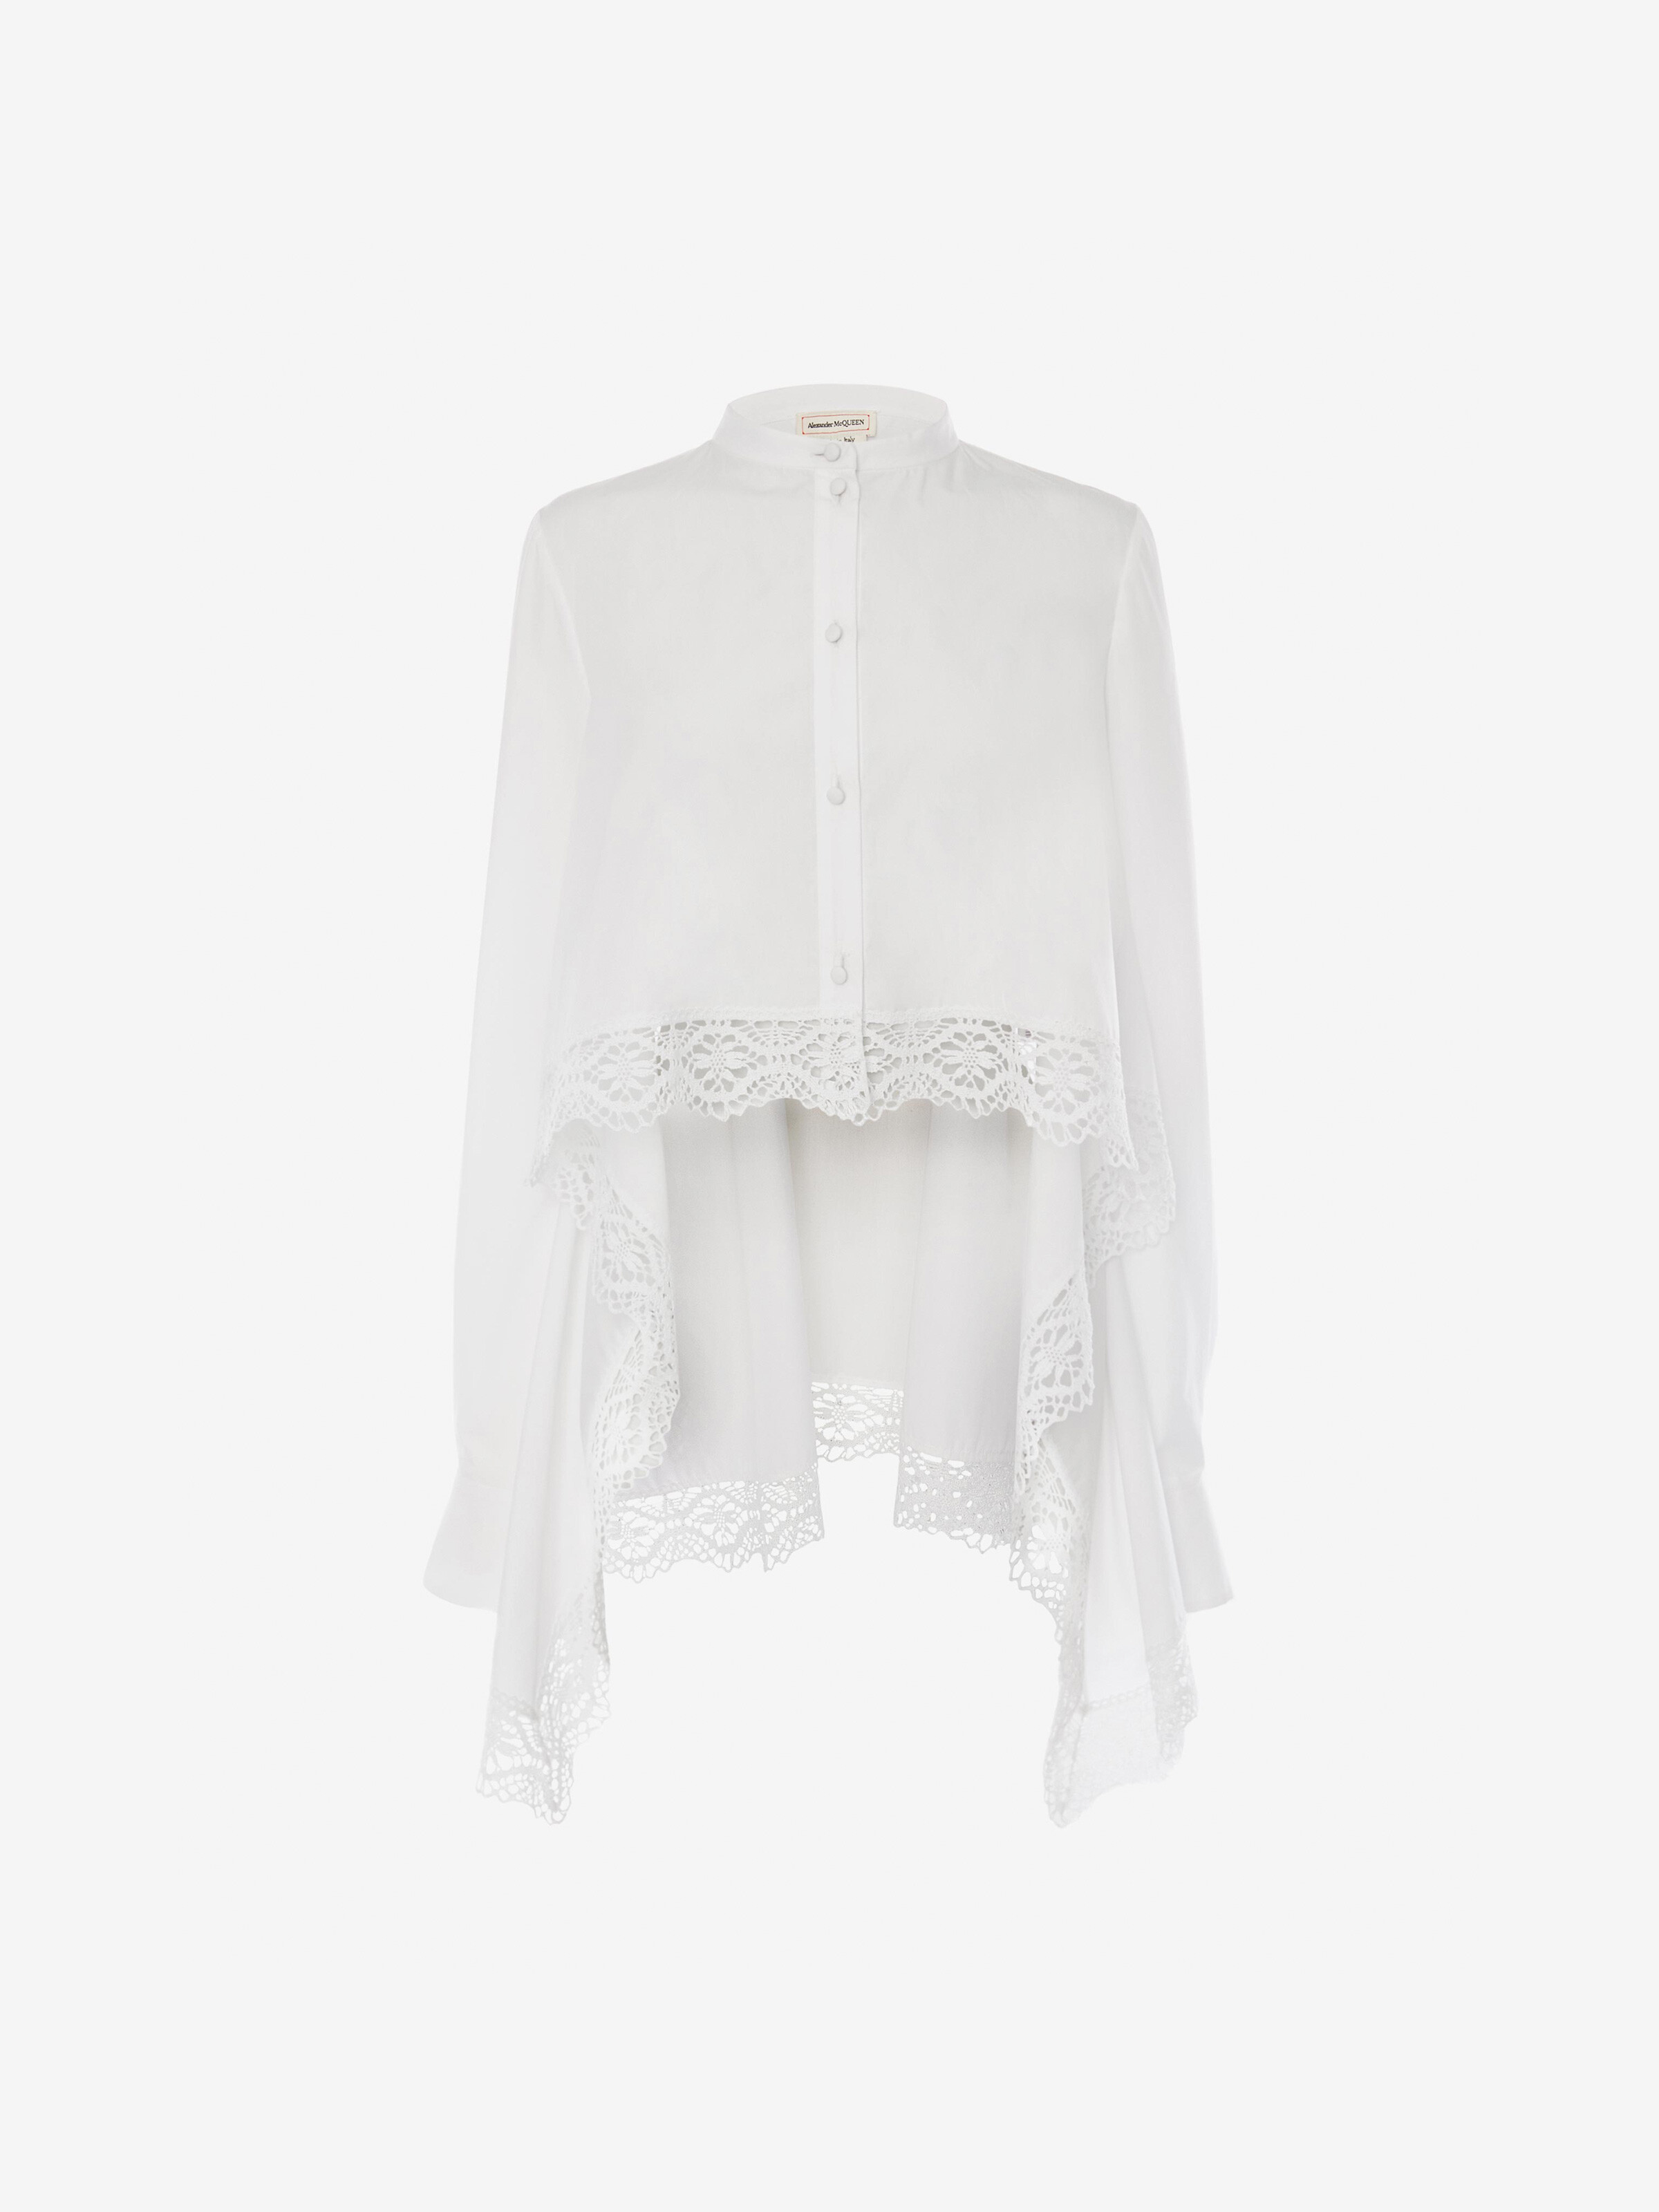 Alexander Mcqueen White Lace-trimmed Cotton-poplin Shirt In Optical White